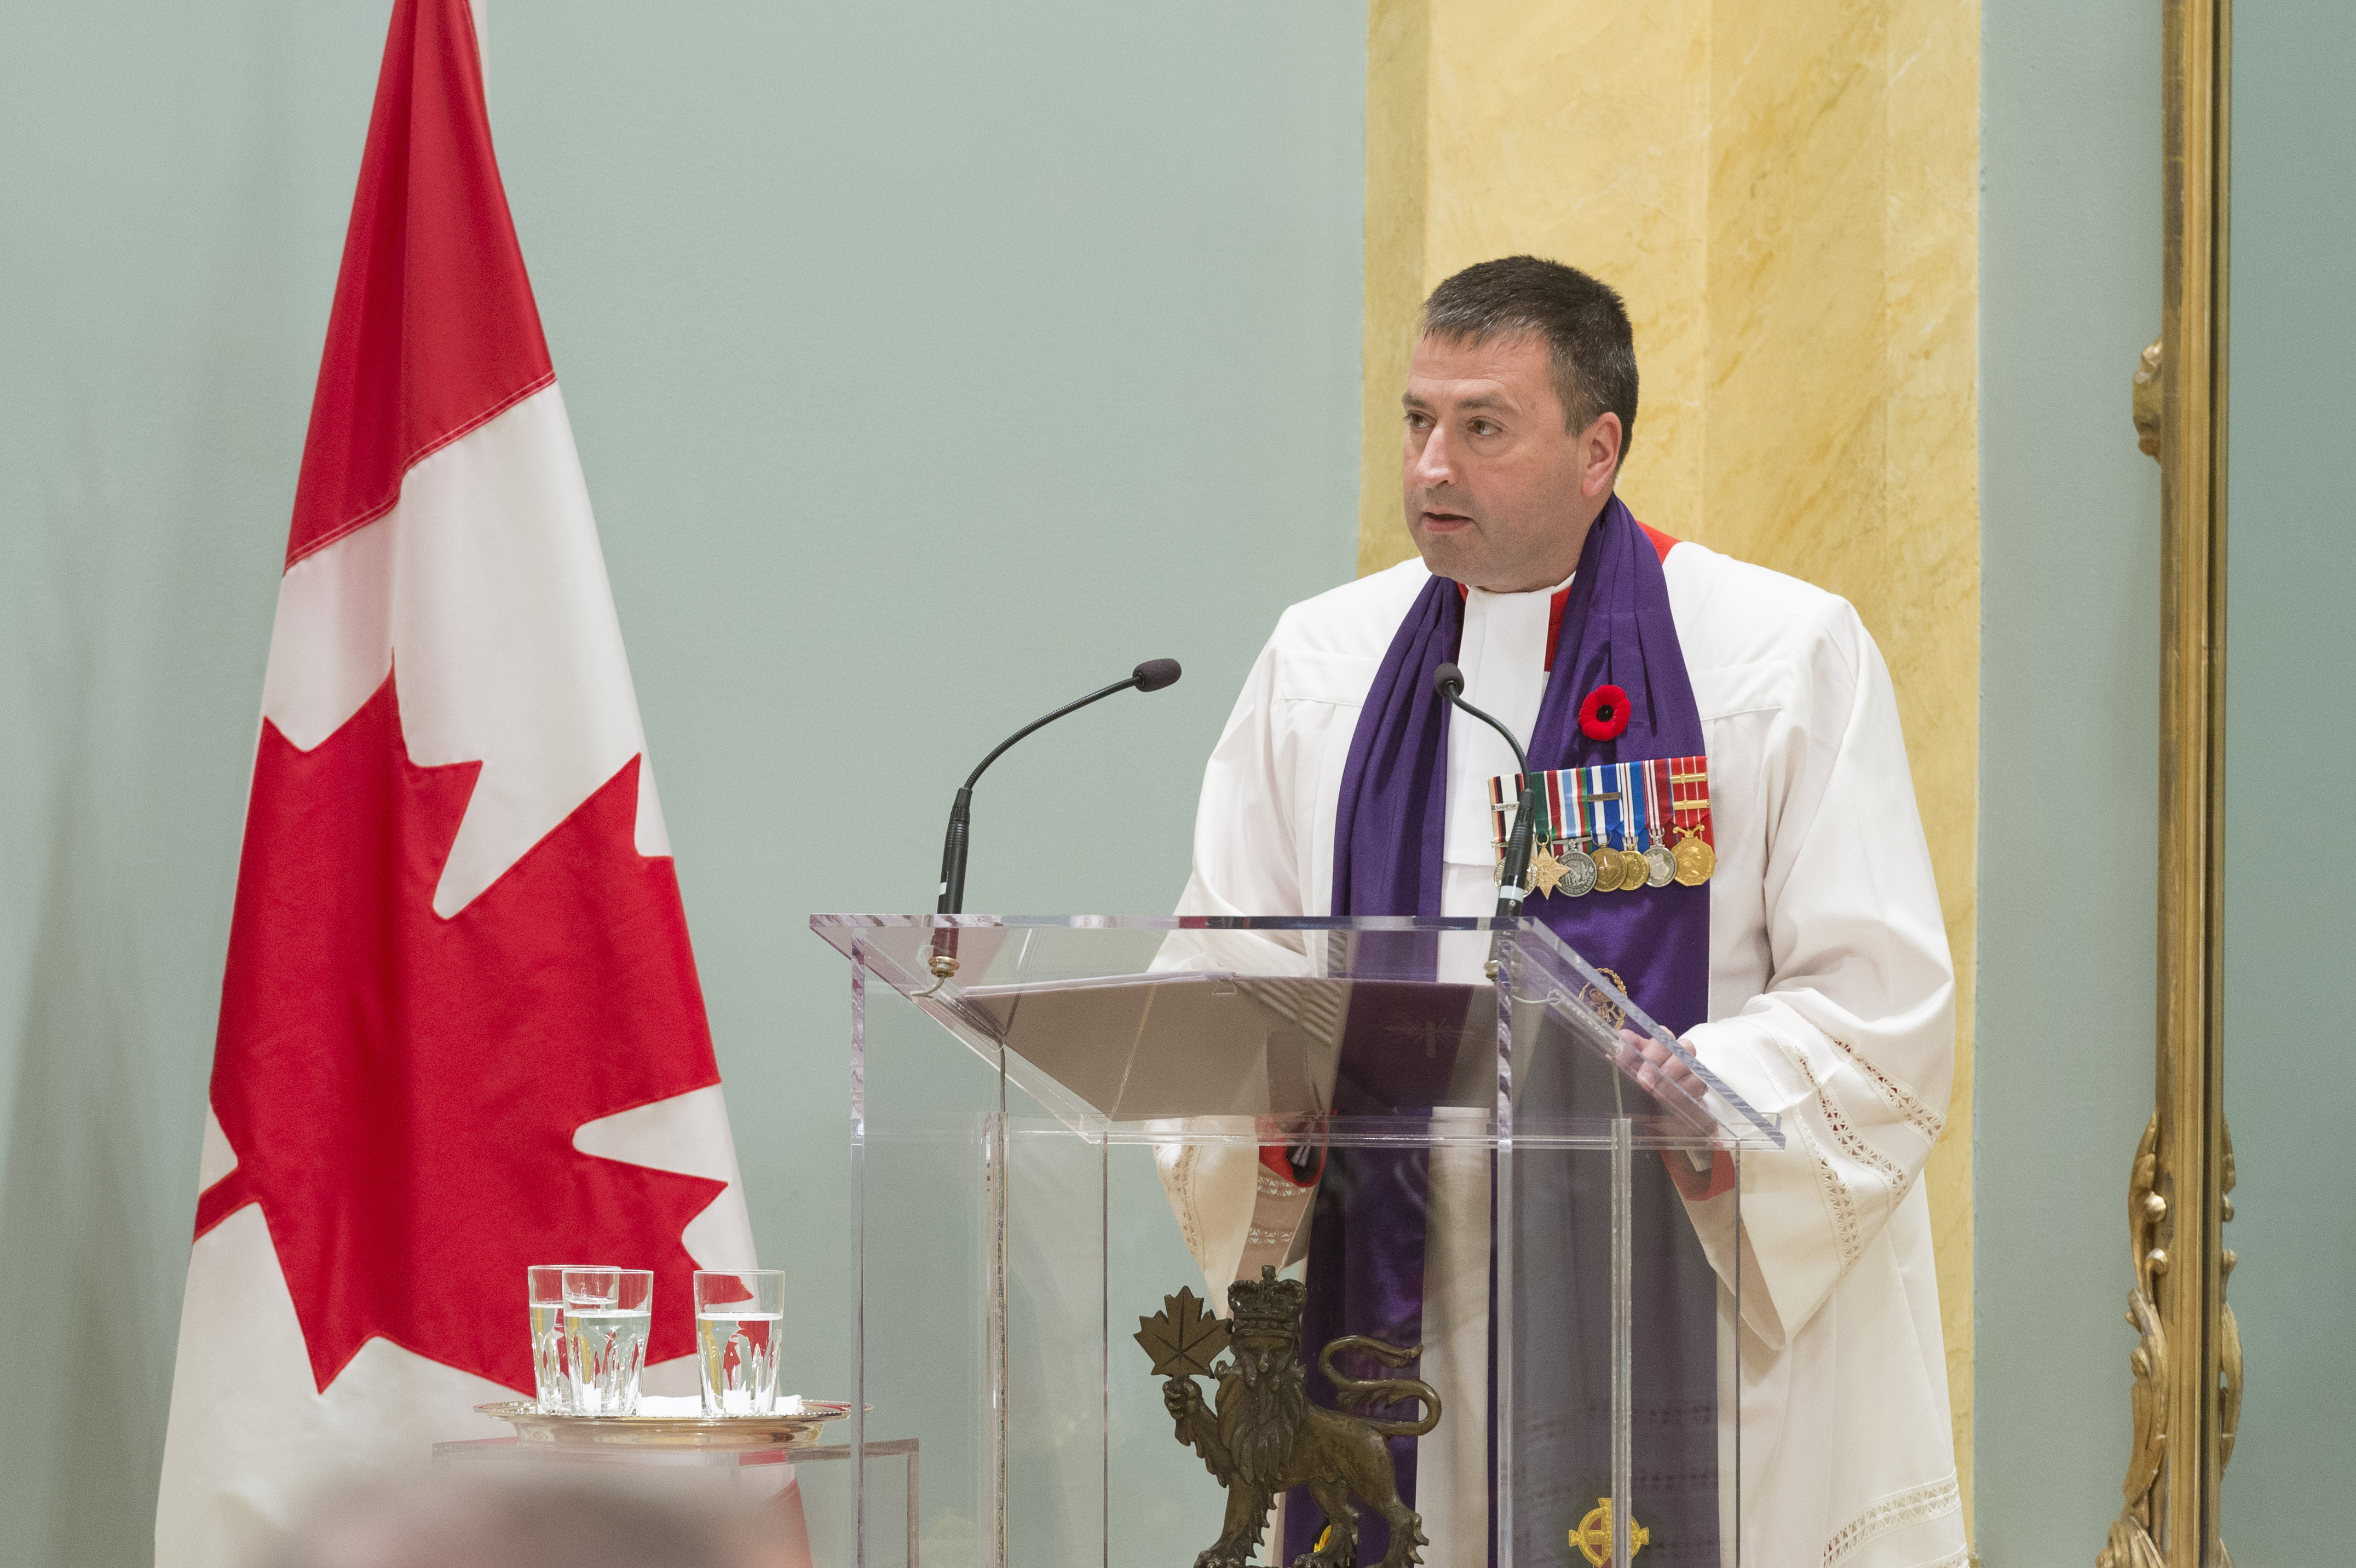 The Chaplain General of the Canadian Armed Forces, Major-General Guy Chapdelaine, offers prayers at the beginning Order of Military Merit induction ceremony on November 10, 2017. PHOTO: Sergeant Johanie Maheu, Rideau Hall © OSGG, GG05-2017-0395-006